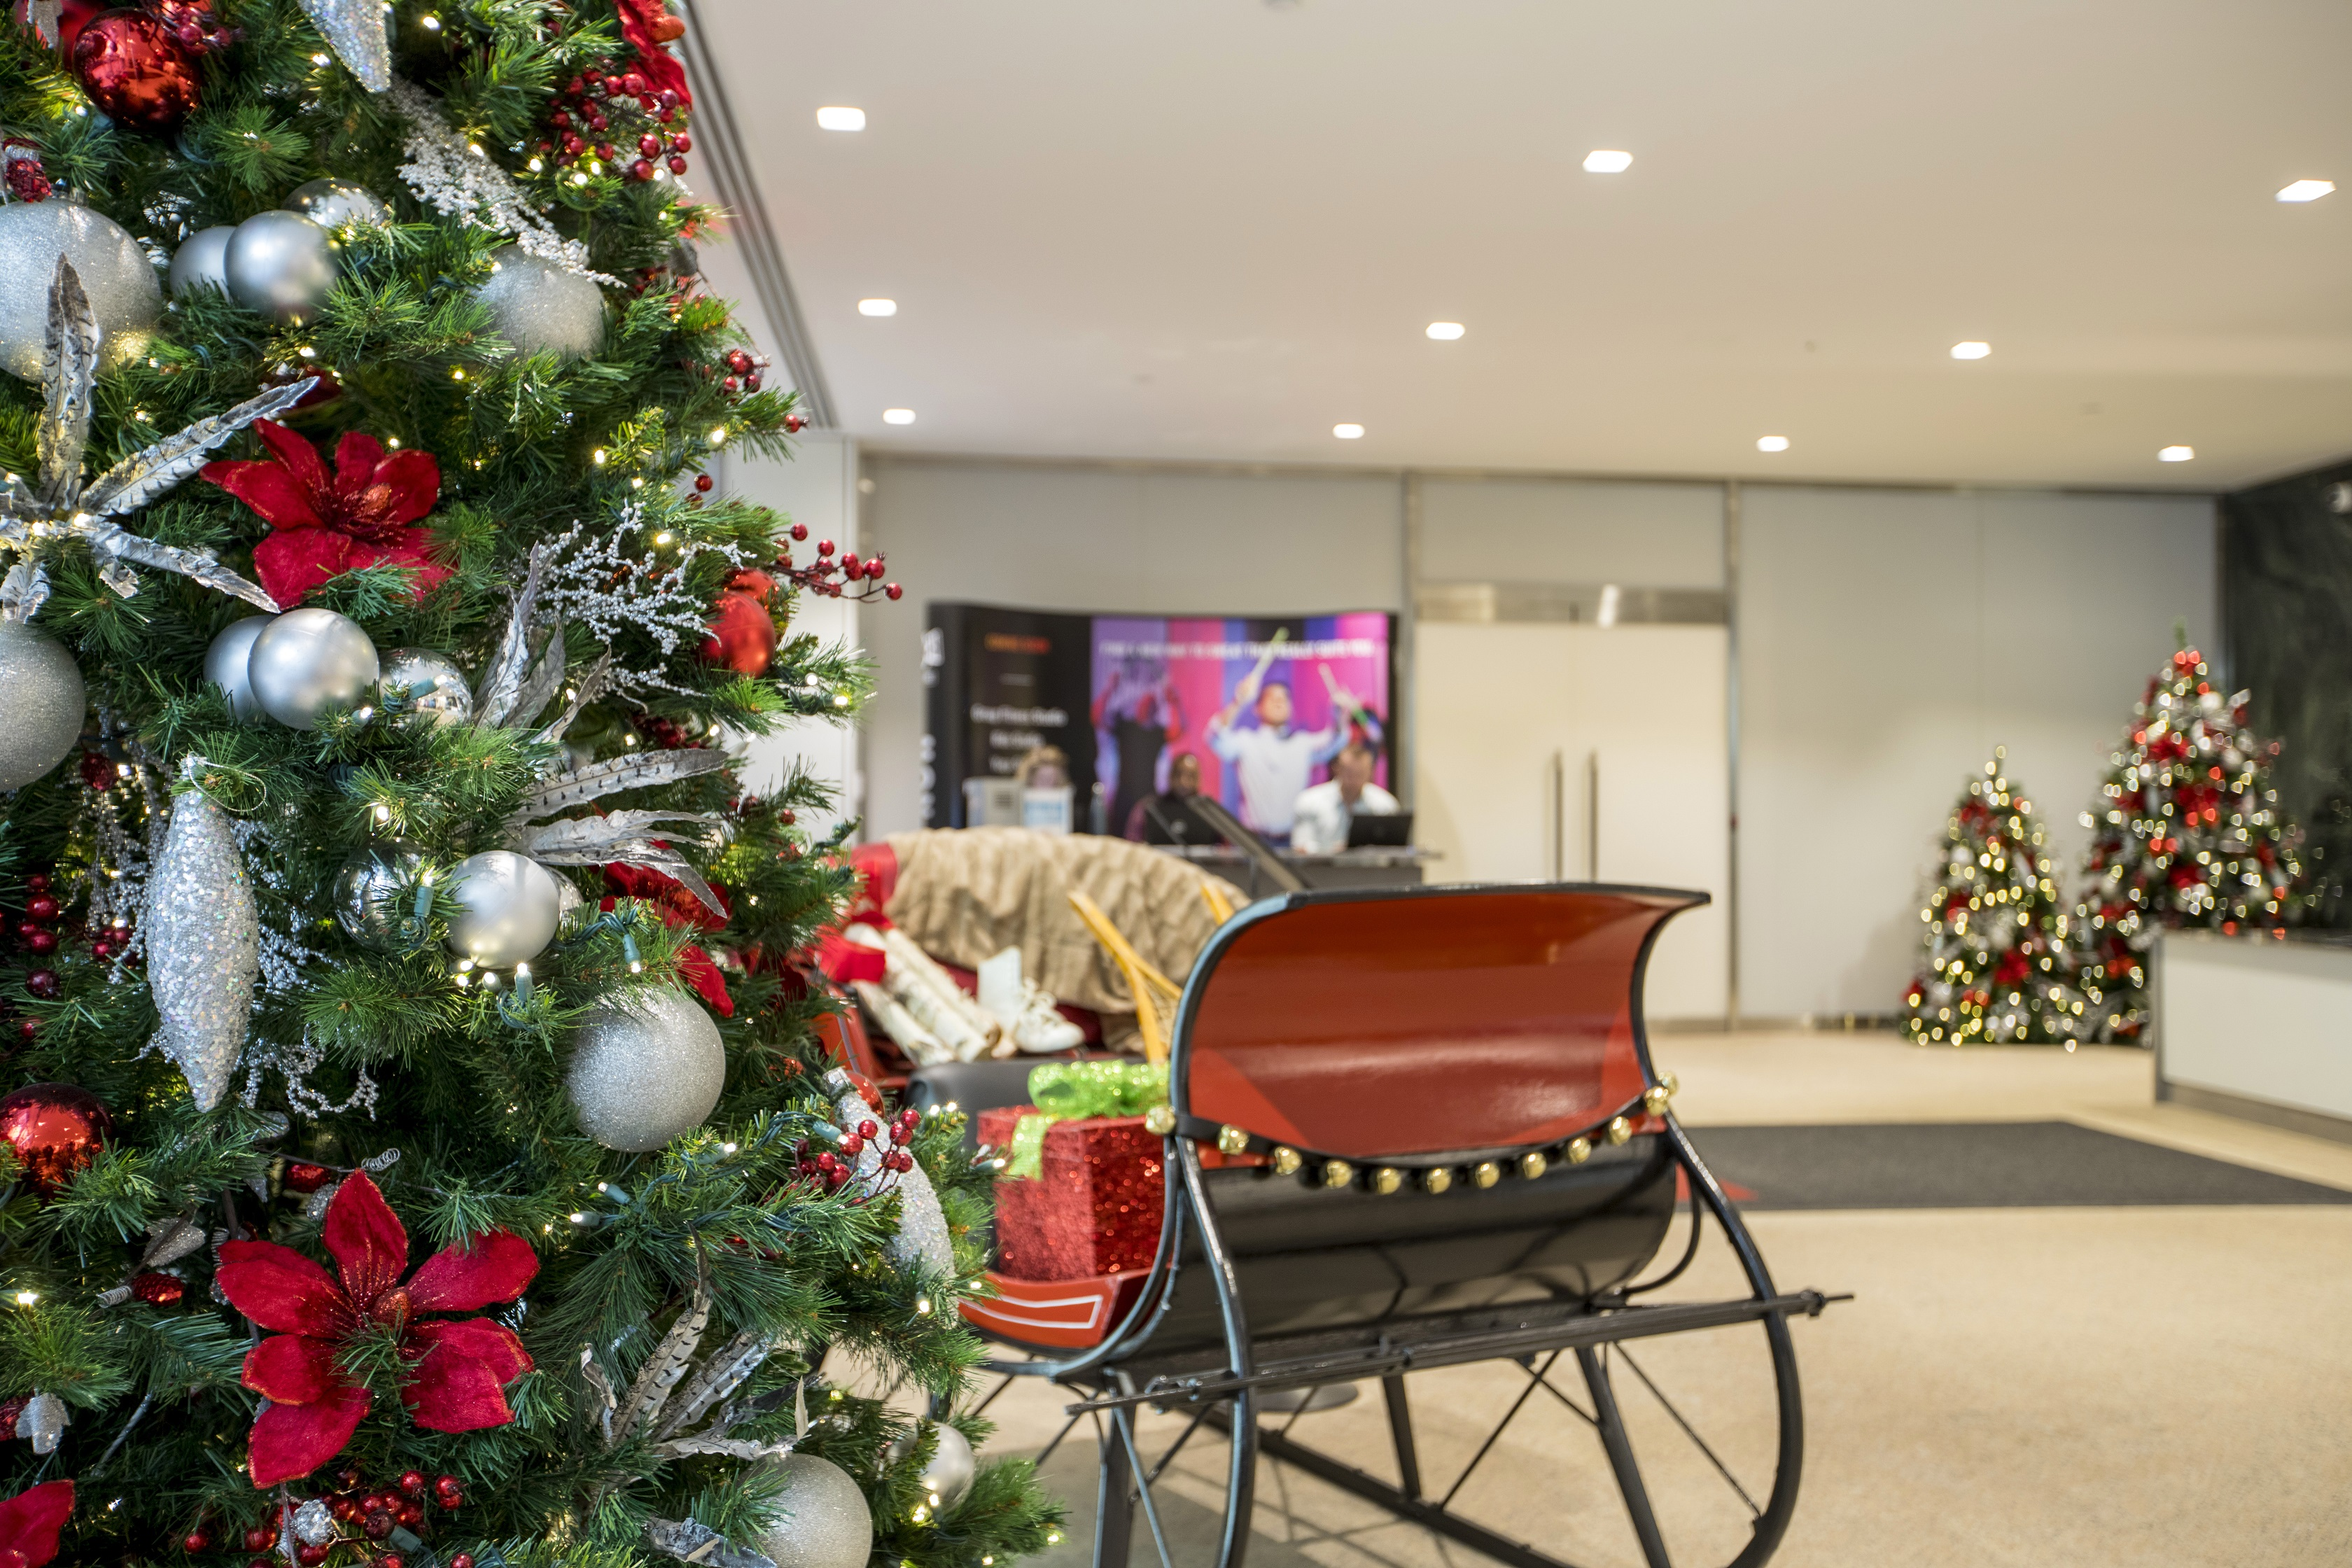 Classic Holiday Elements blend with sleek modern décor to create the perfect look for this commercial lobby space.